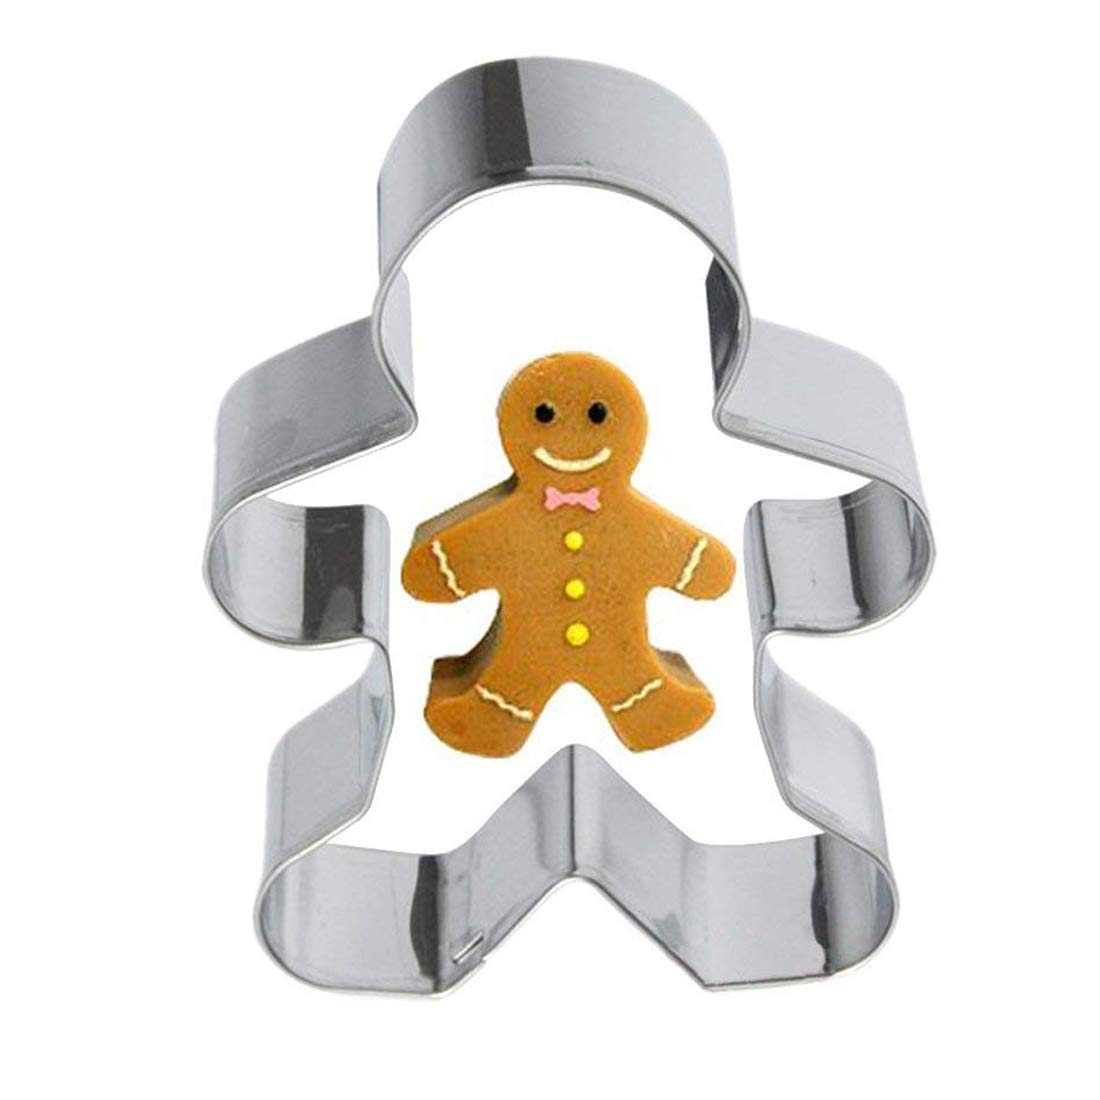 Aluminium Alloy Gingerbread Men Shaped Holiday Baking Biscuit Christmas Cookie Cutter Tools Decorating Tools Basico